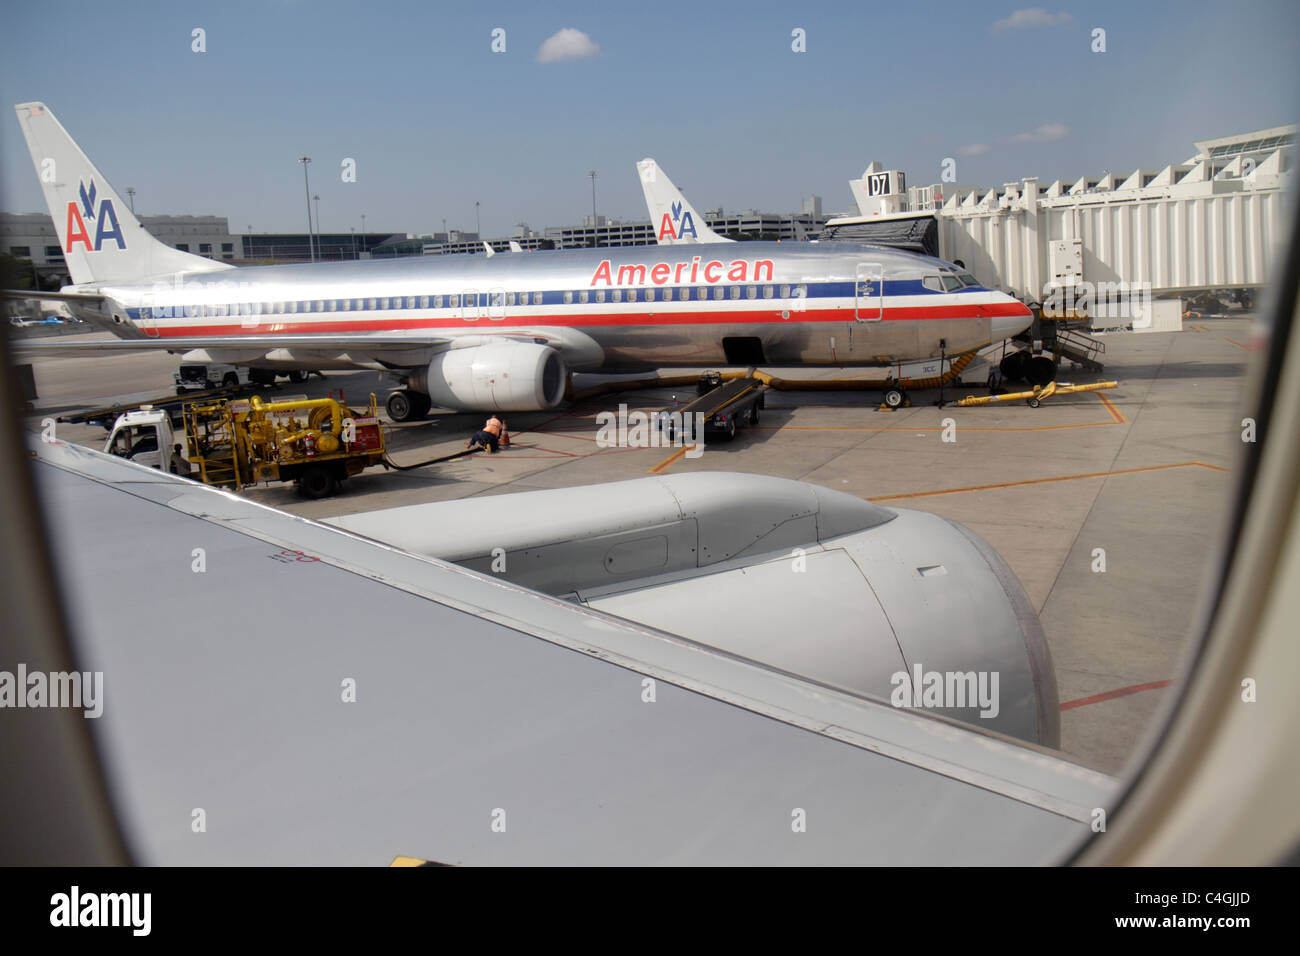 MiamiMiami Florida International Airport MIA American Airlines commercial airliner window seat view gate tarmac - Stock Image